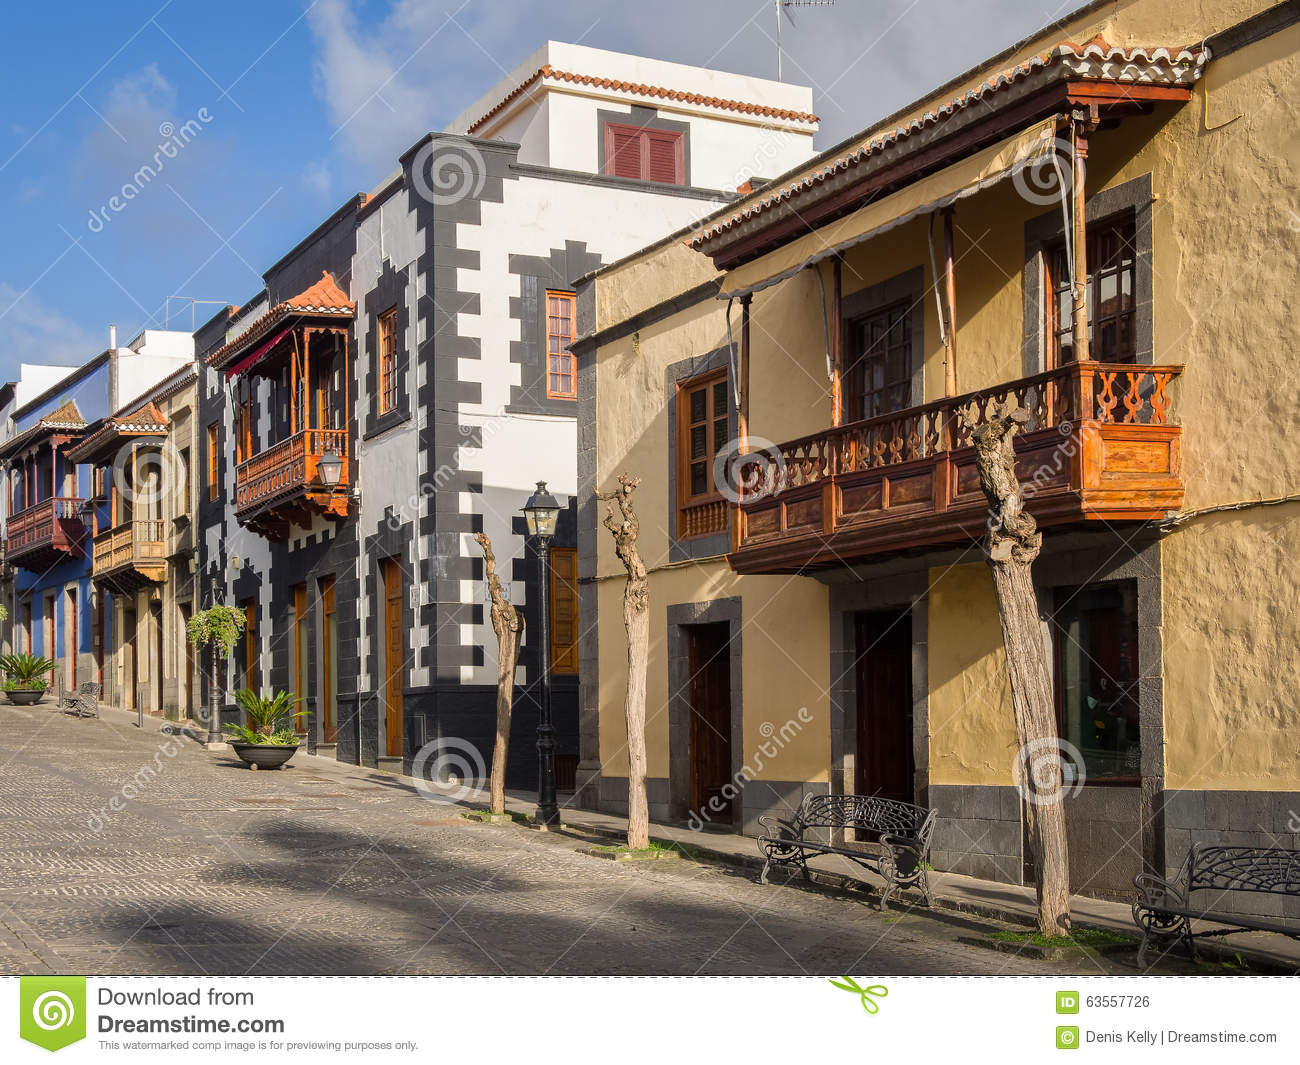 La Cucina Italiana Gran Canaria Wooden Balconies In Gran Canaria Spain Stock Photo